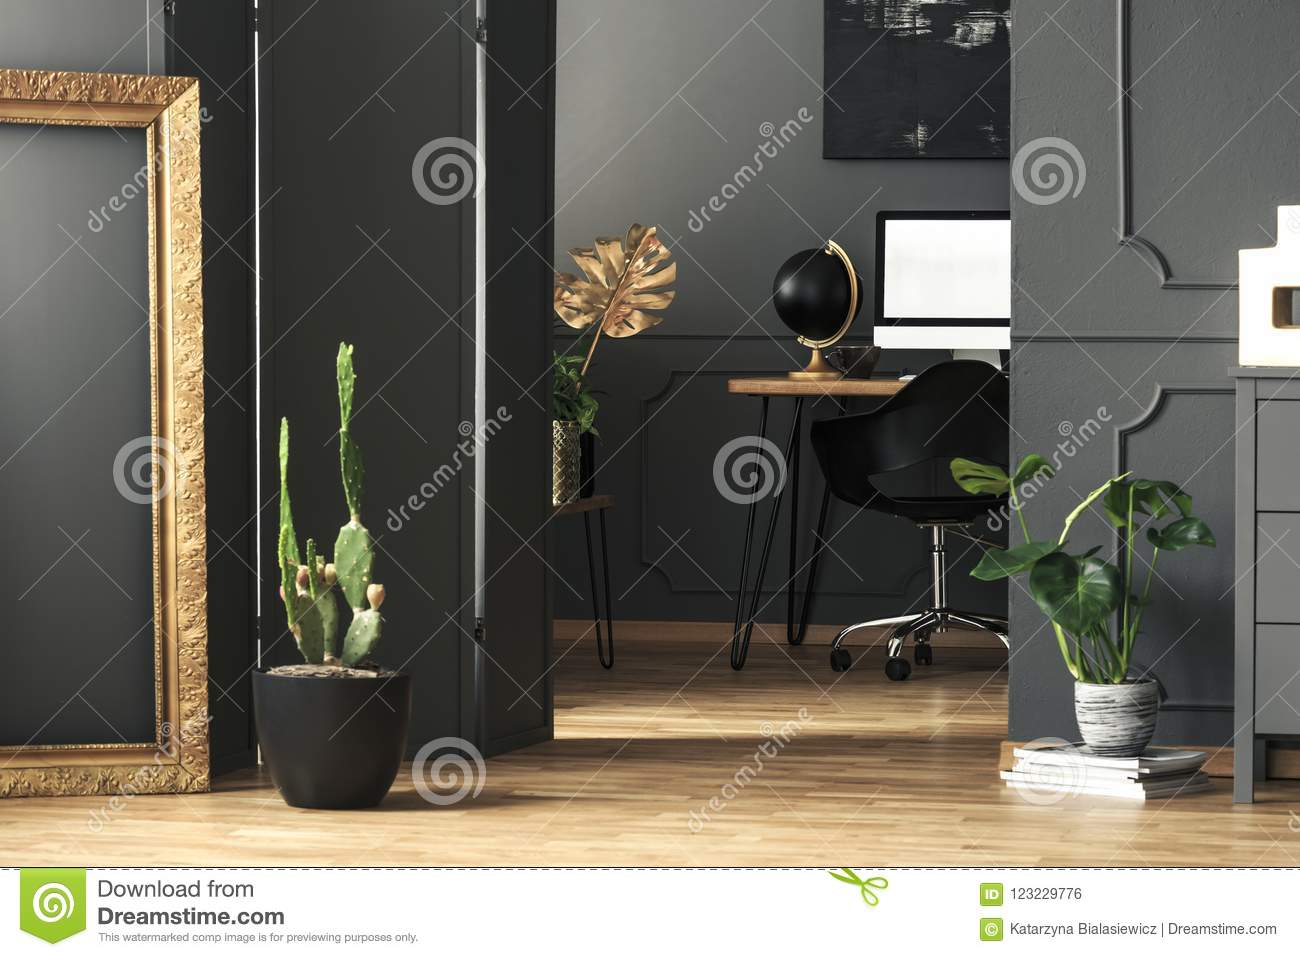 Gold frame next to cactus in grey home office interior with mock